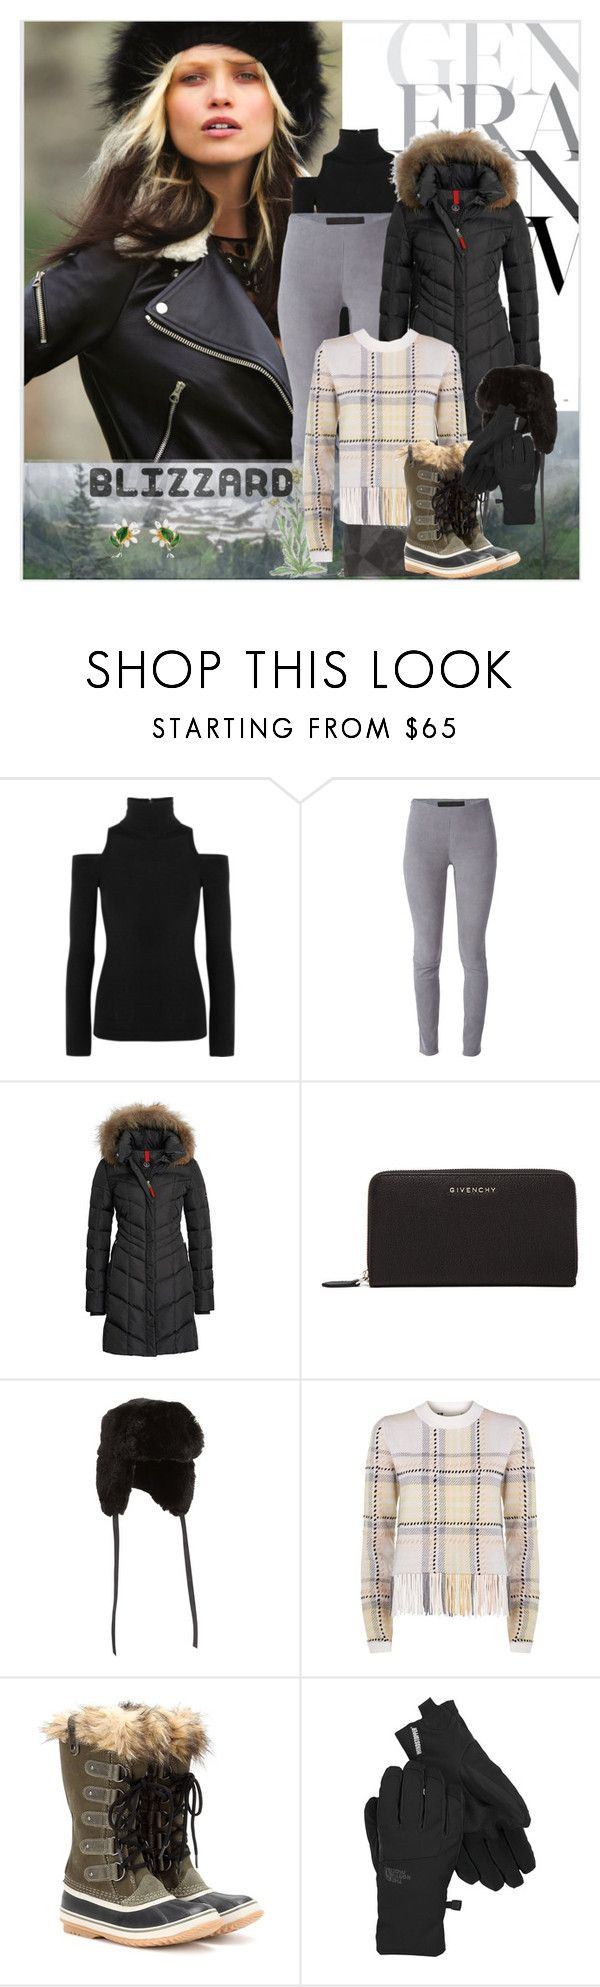 """""""Edelweiss: Flower of the Mountains"""" by bklou ❤ liked on Polyvore featuring Donna Karan, Drome, Bogner Fire + Ice, Givenchy, Neiman Marcus, Chloé, SOREL, The North Face, Dolce&Gabbana and women's clothing"""